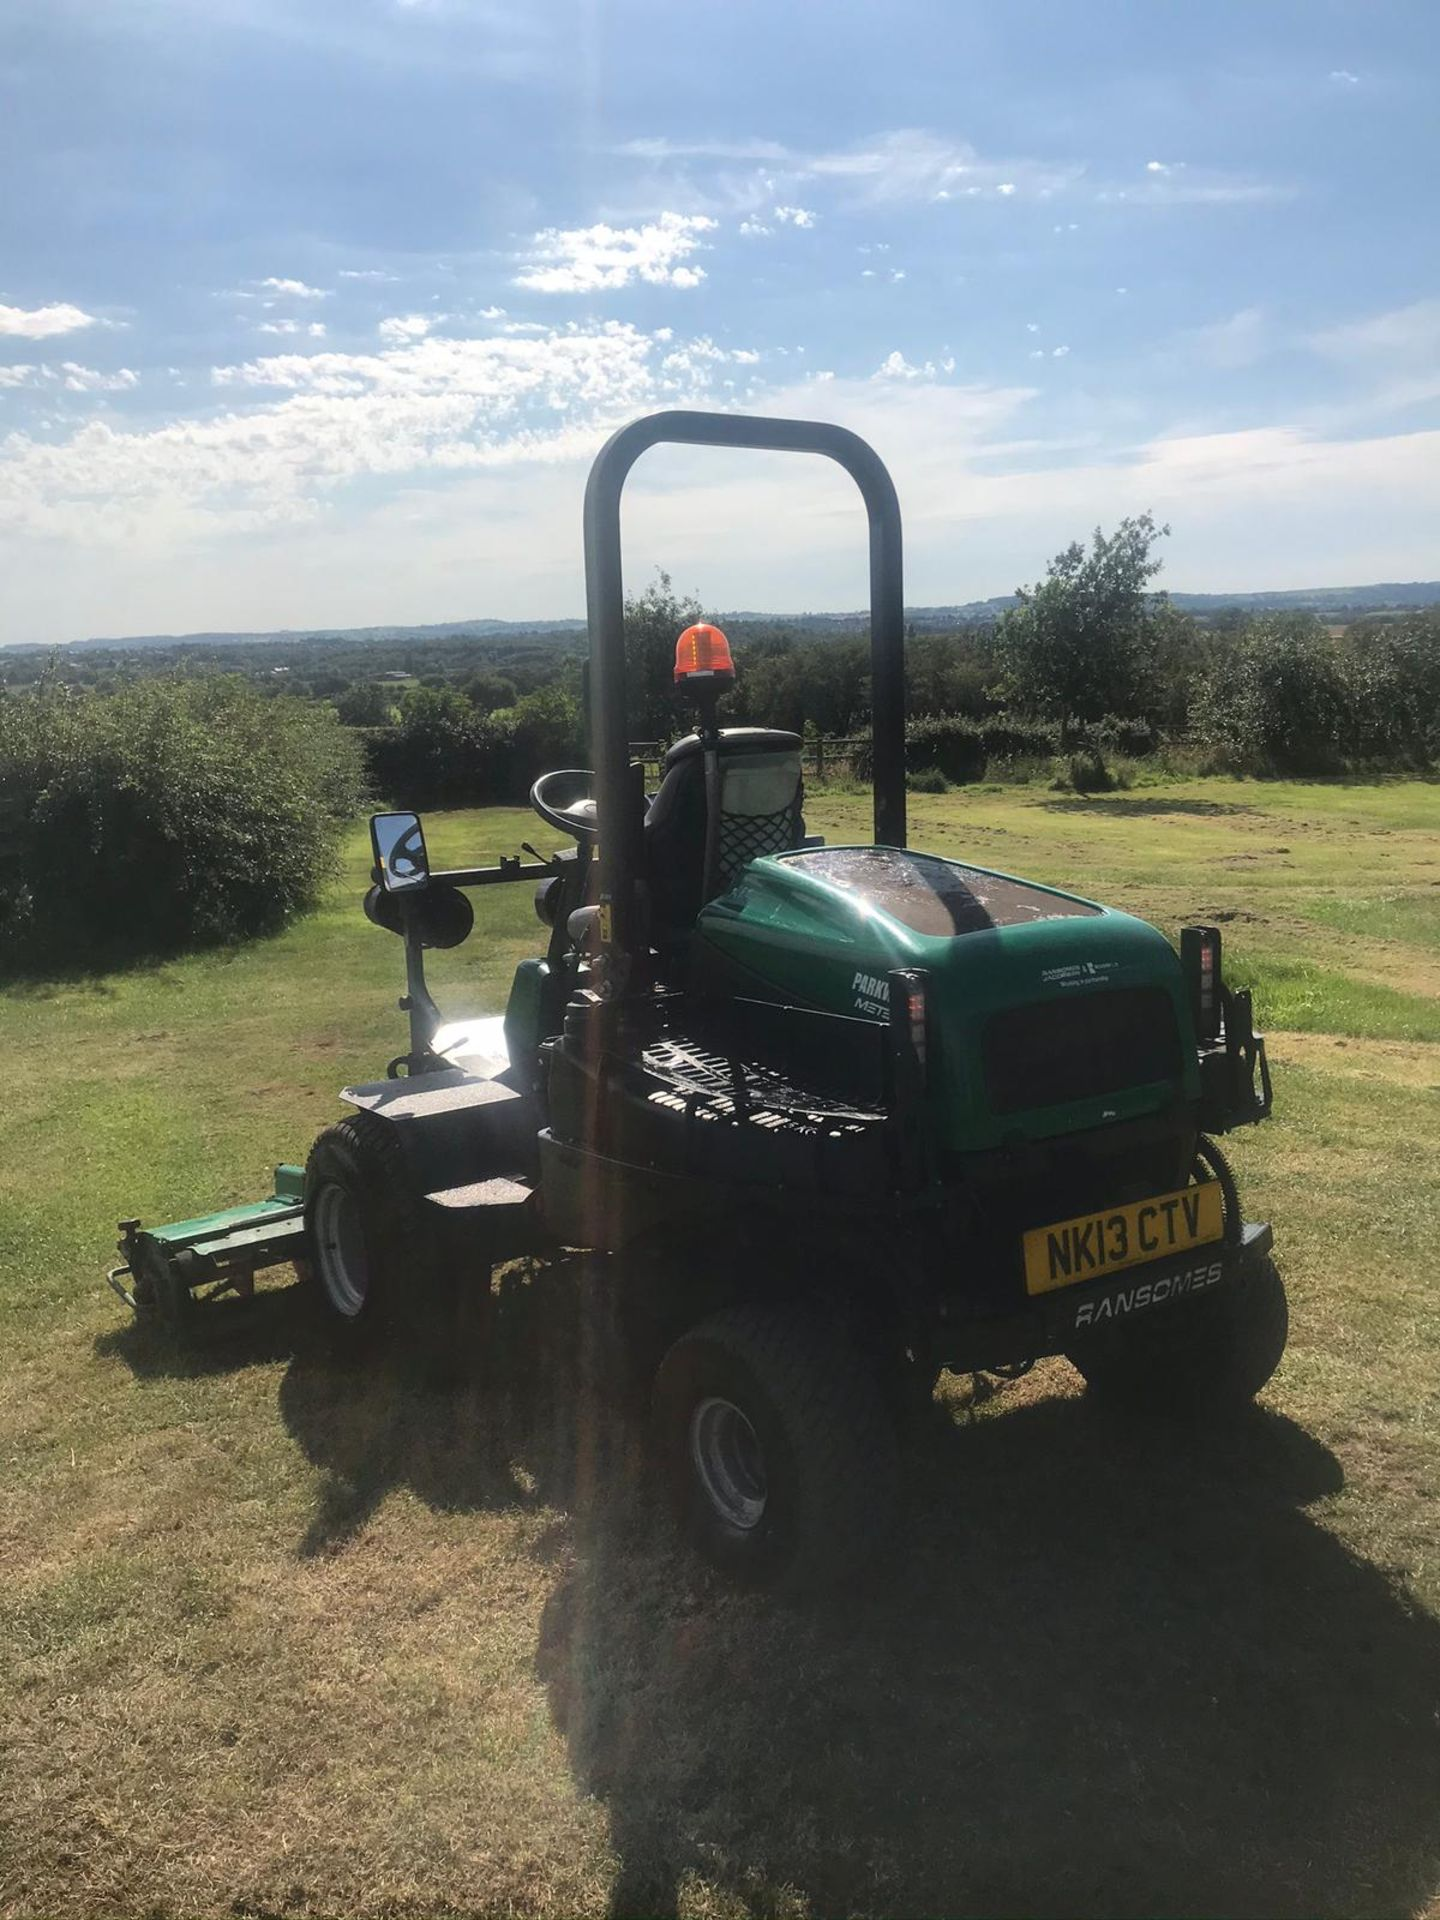 2013 RANSOMES PARKWAY 3, RUNS, DRIVES AND CUTS, ROAD LEGAL *PLUS VAT* - Image 4 of 4